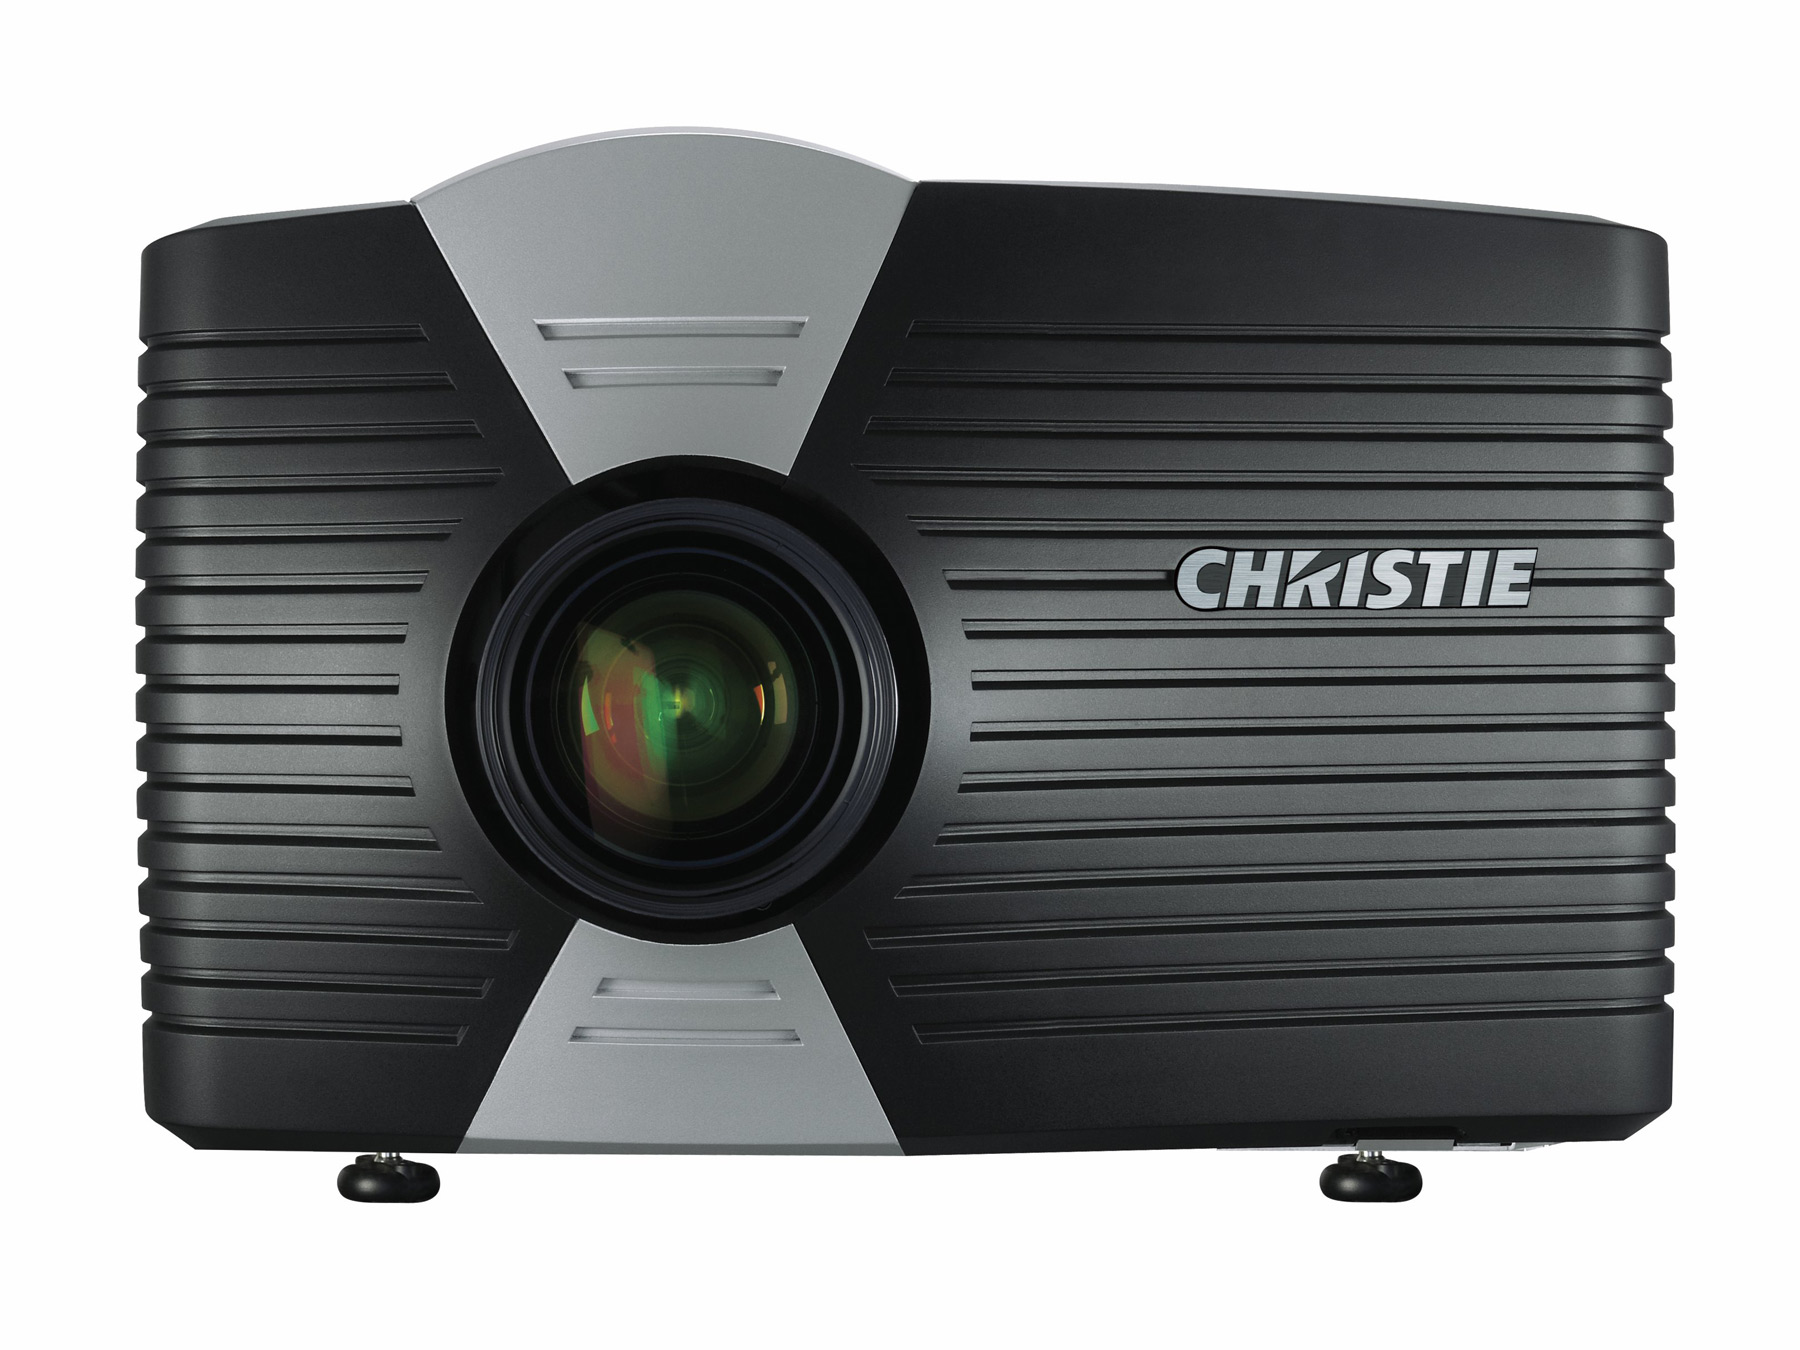 /globalassets/.catalog/products/images/christie-cp4220/gallery/digital-cinema-projector-4k-image-3.jpg